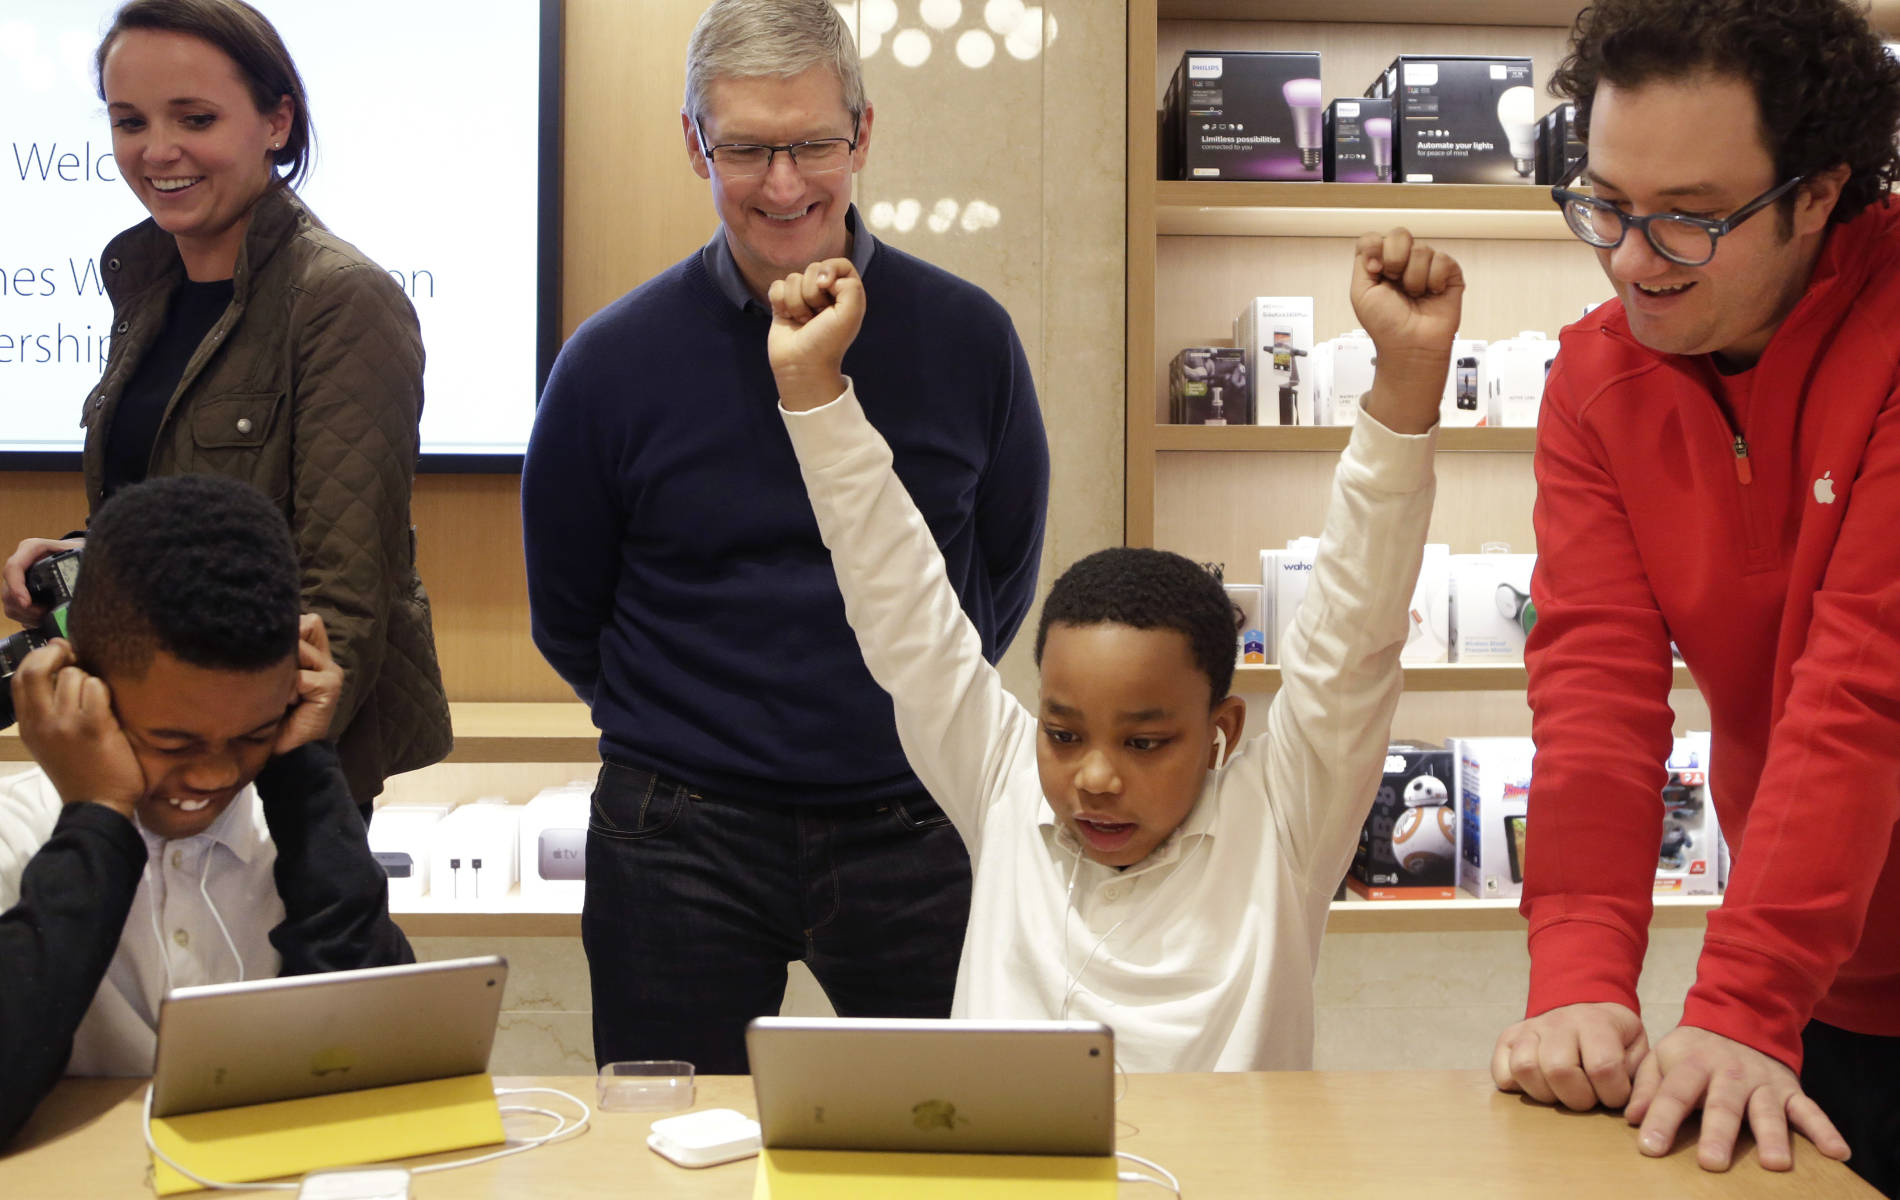 Apple CEO Tim Cook pens open letter to FBI: We will not build a backdoor into iPhone, not even to investigate terrorists